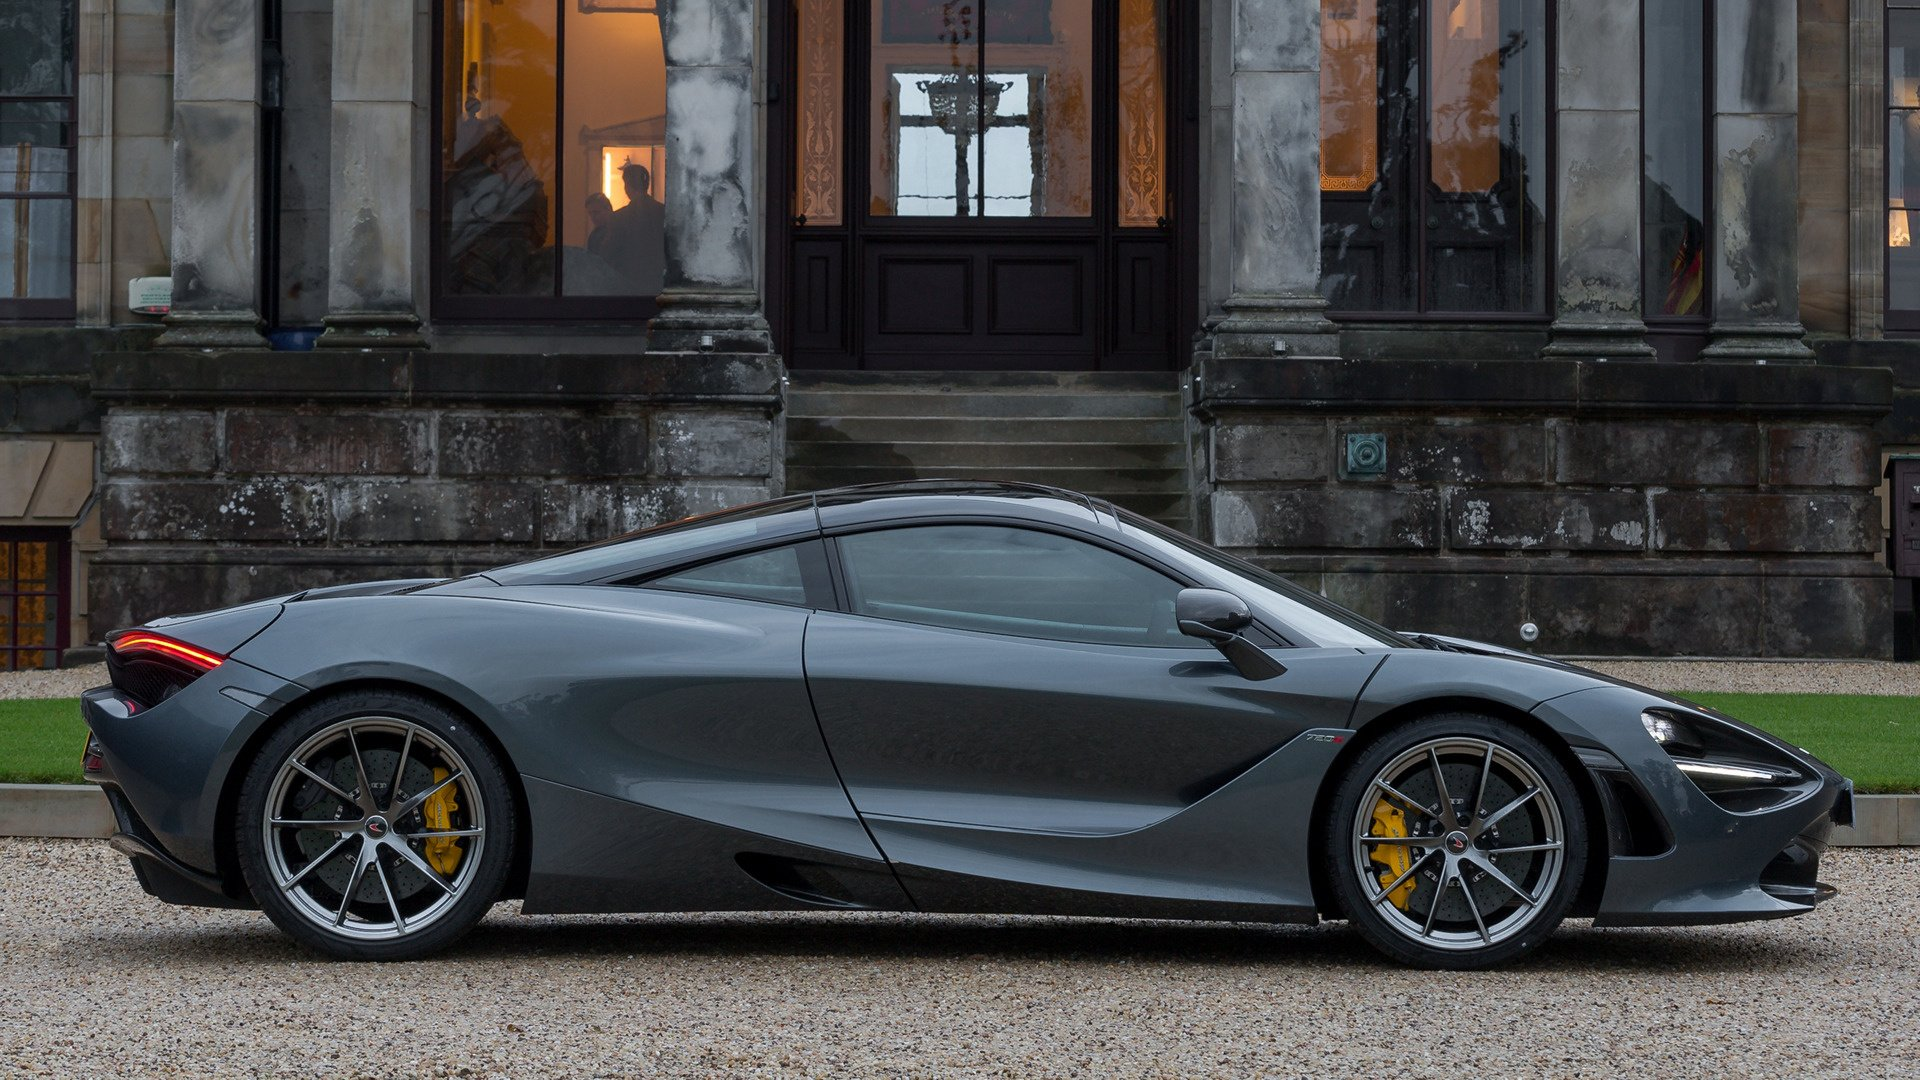 Vehicles - McLaren 720S  Sport Car Coupé Supercar Black Car Wallpaper